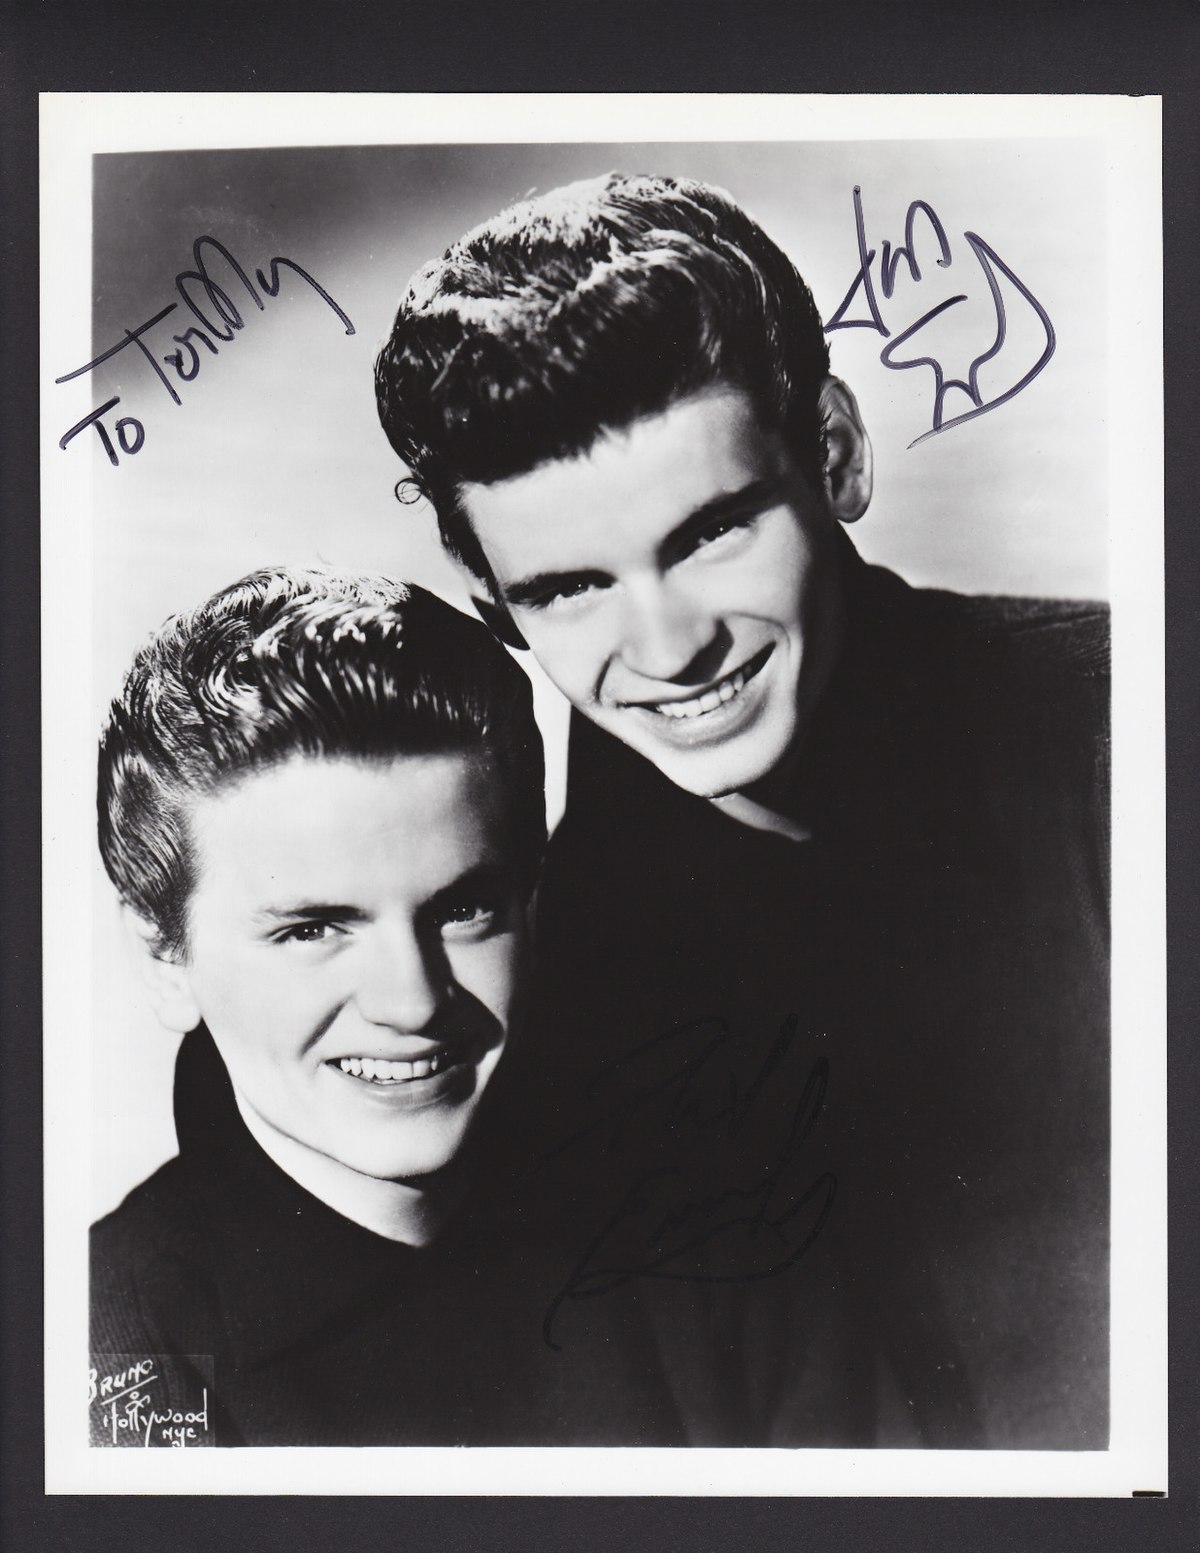 Bestand:Everly Brothers.jpg - Wikipedia